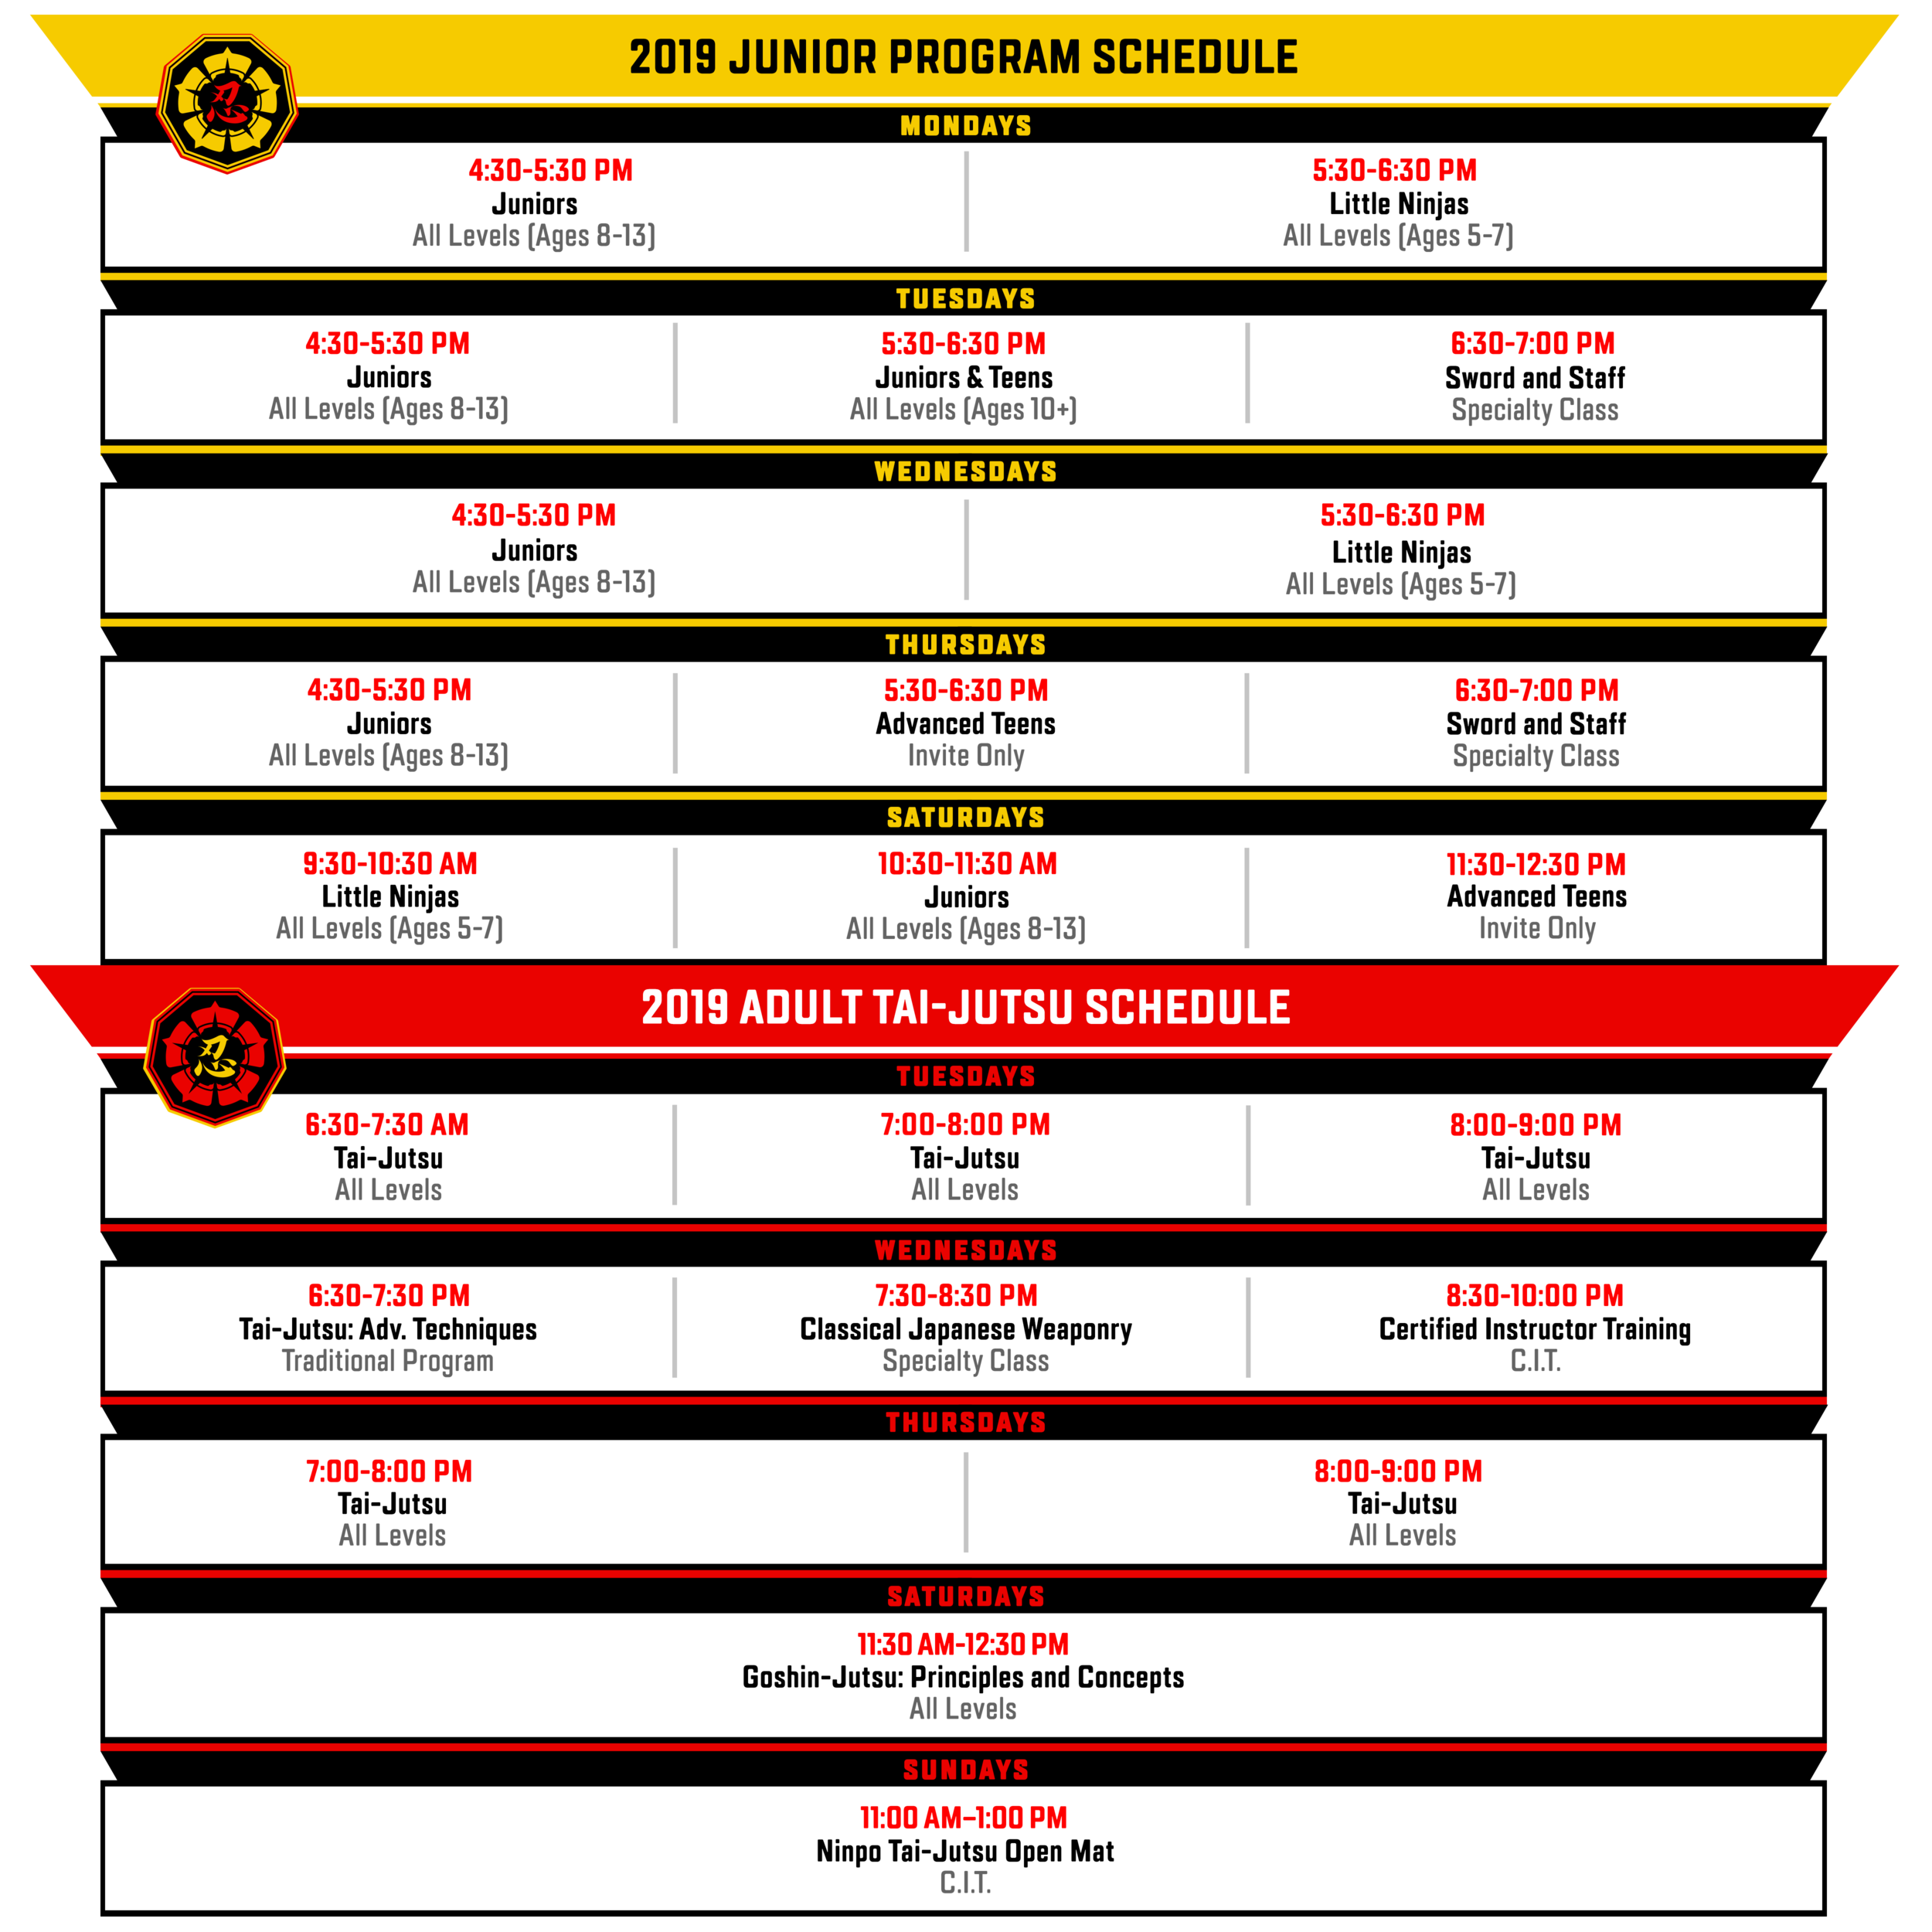 SCMA_NewSchedule-MOBILE-2019-1-1.png